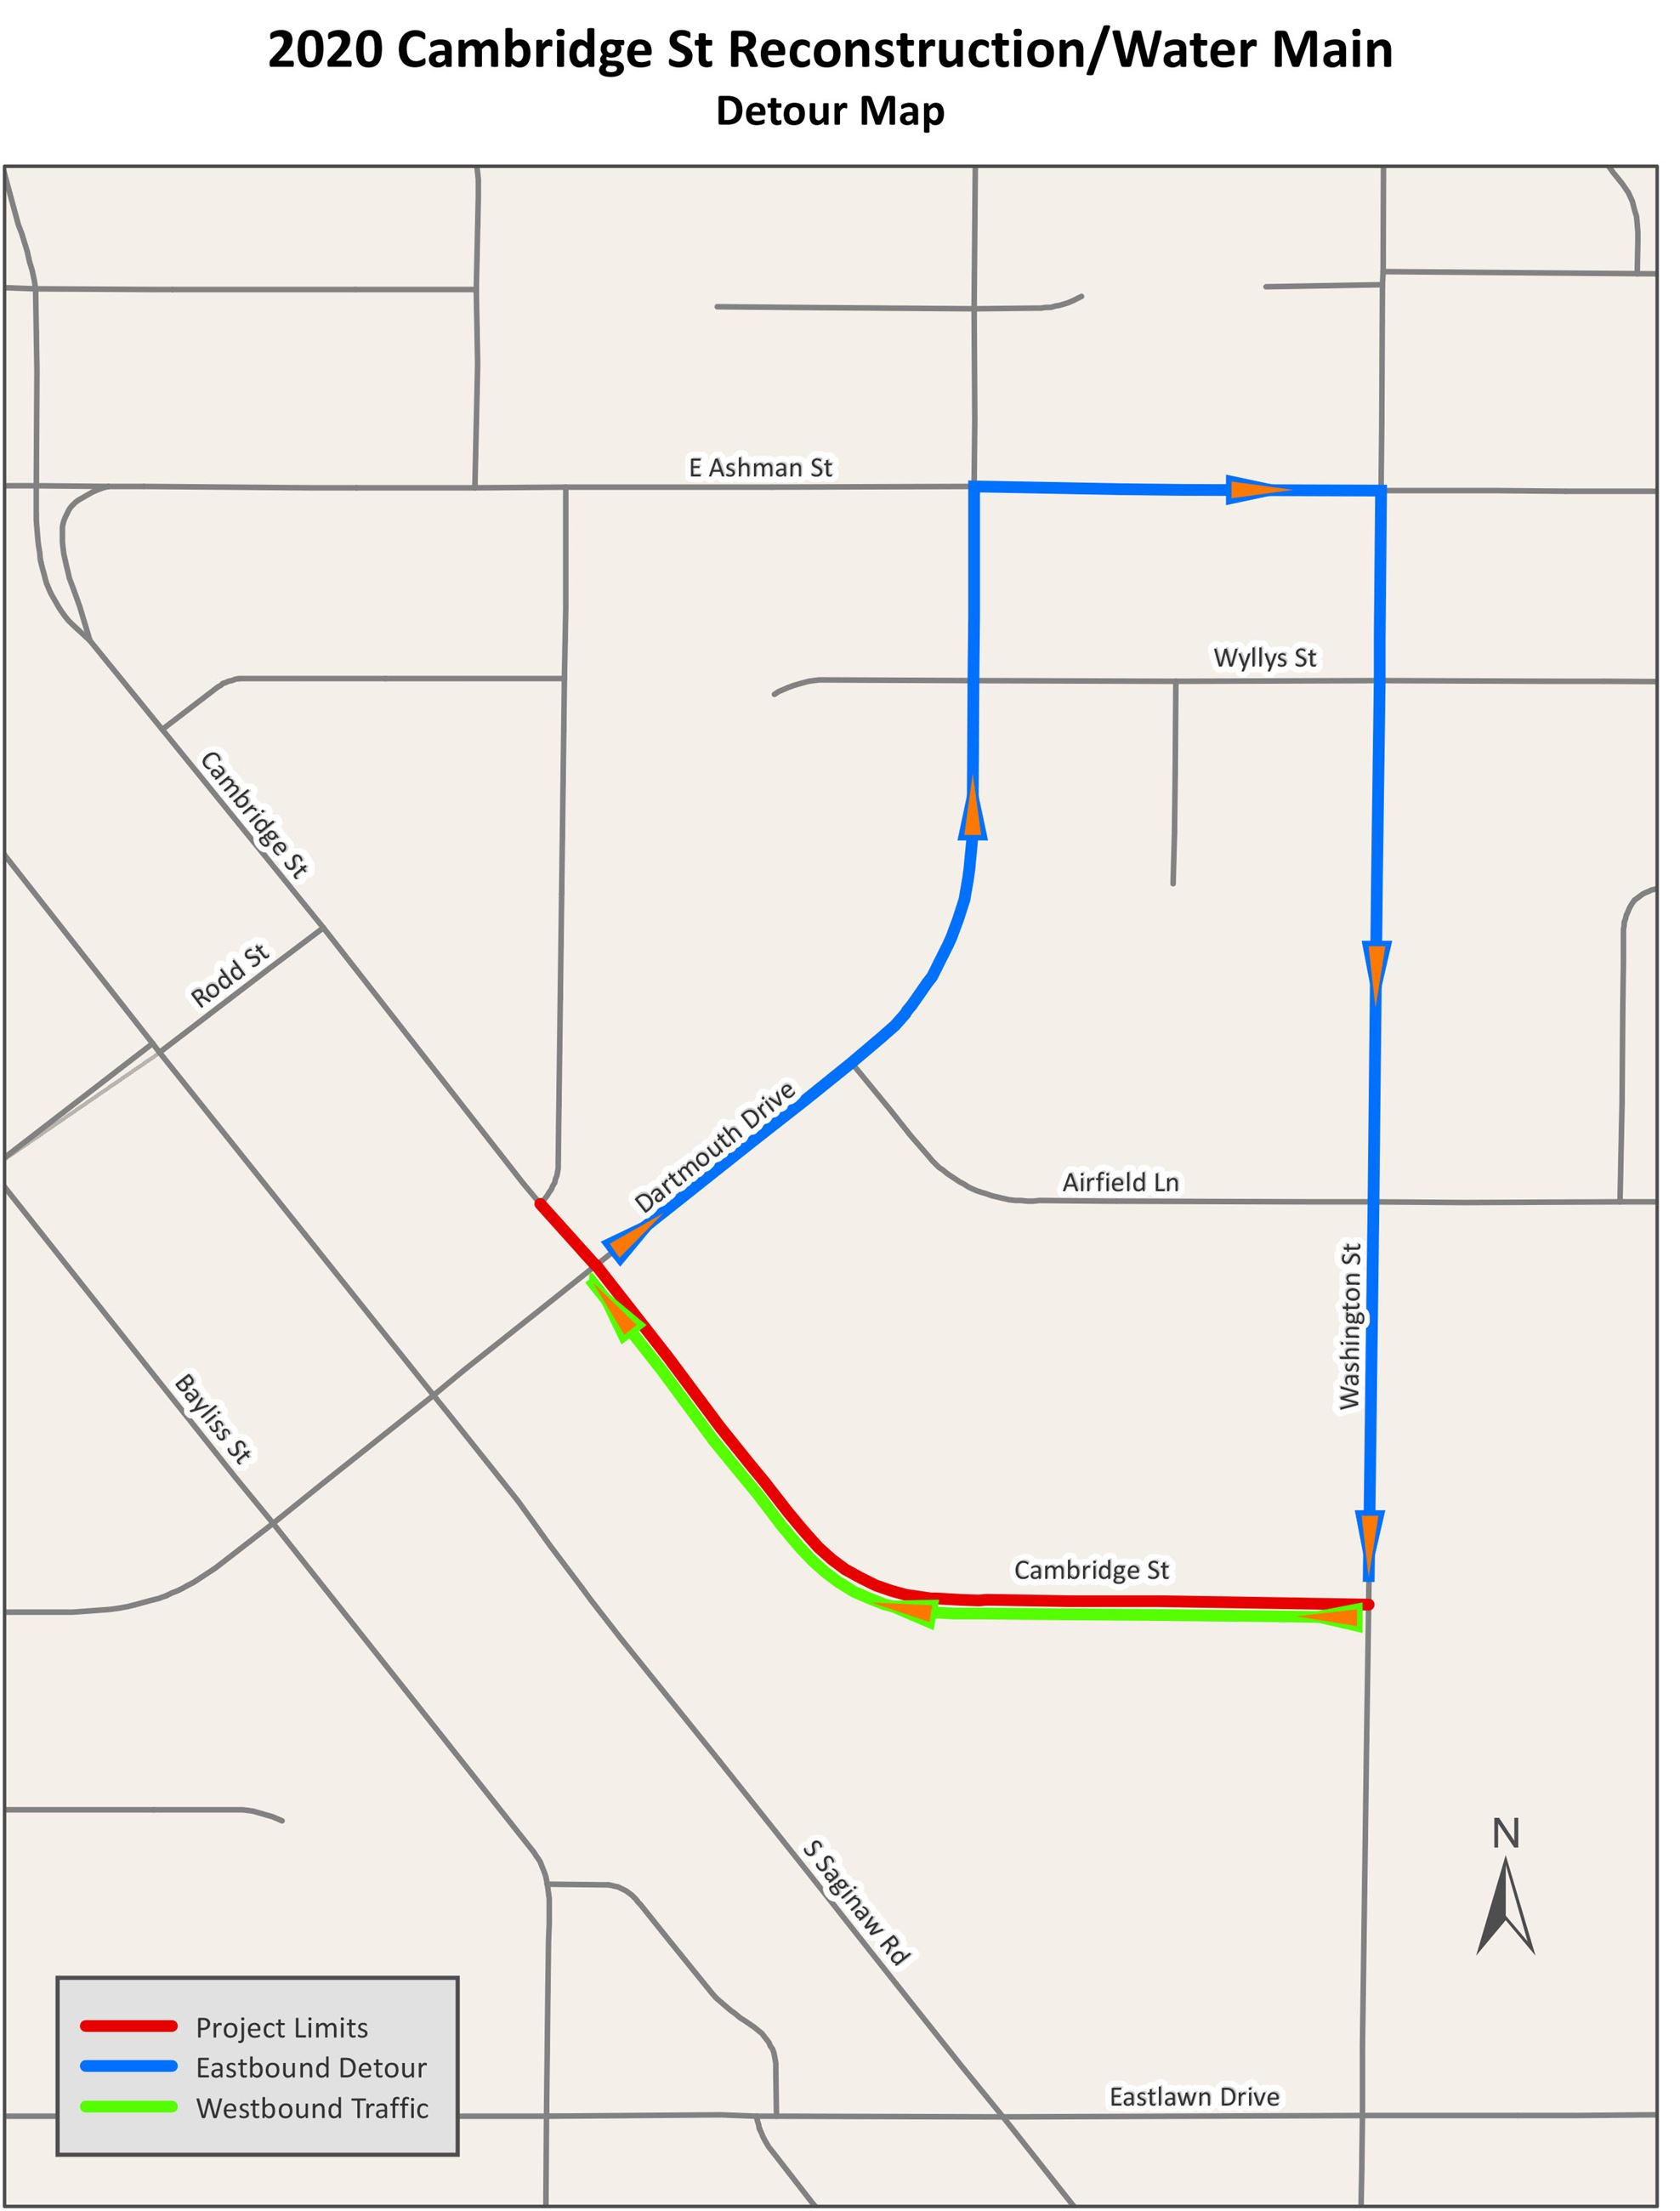 A detour route for eastbound traffic on Cambridge Street